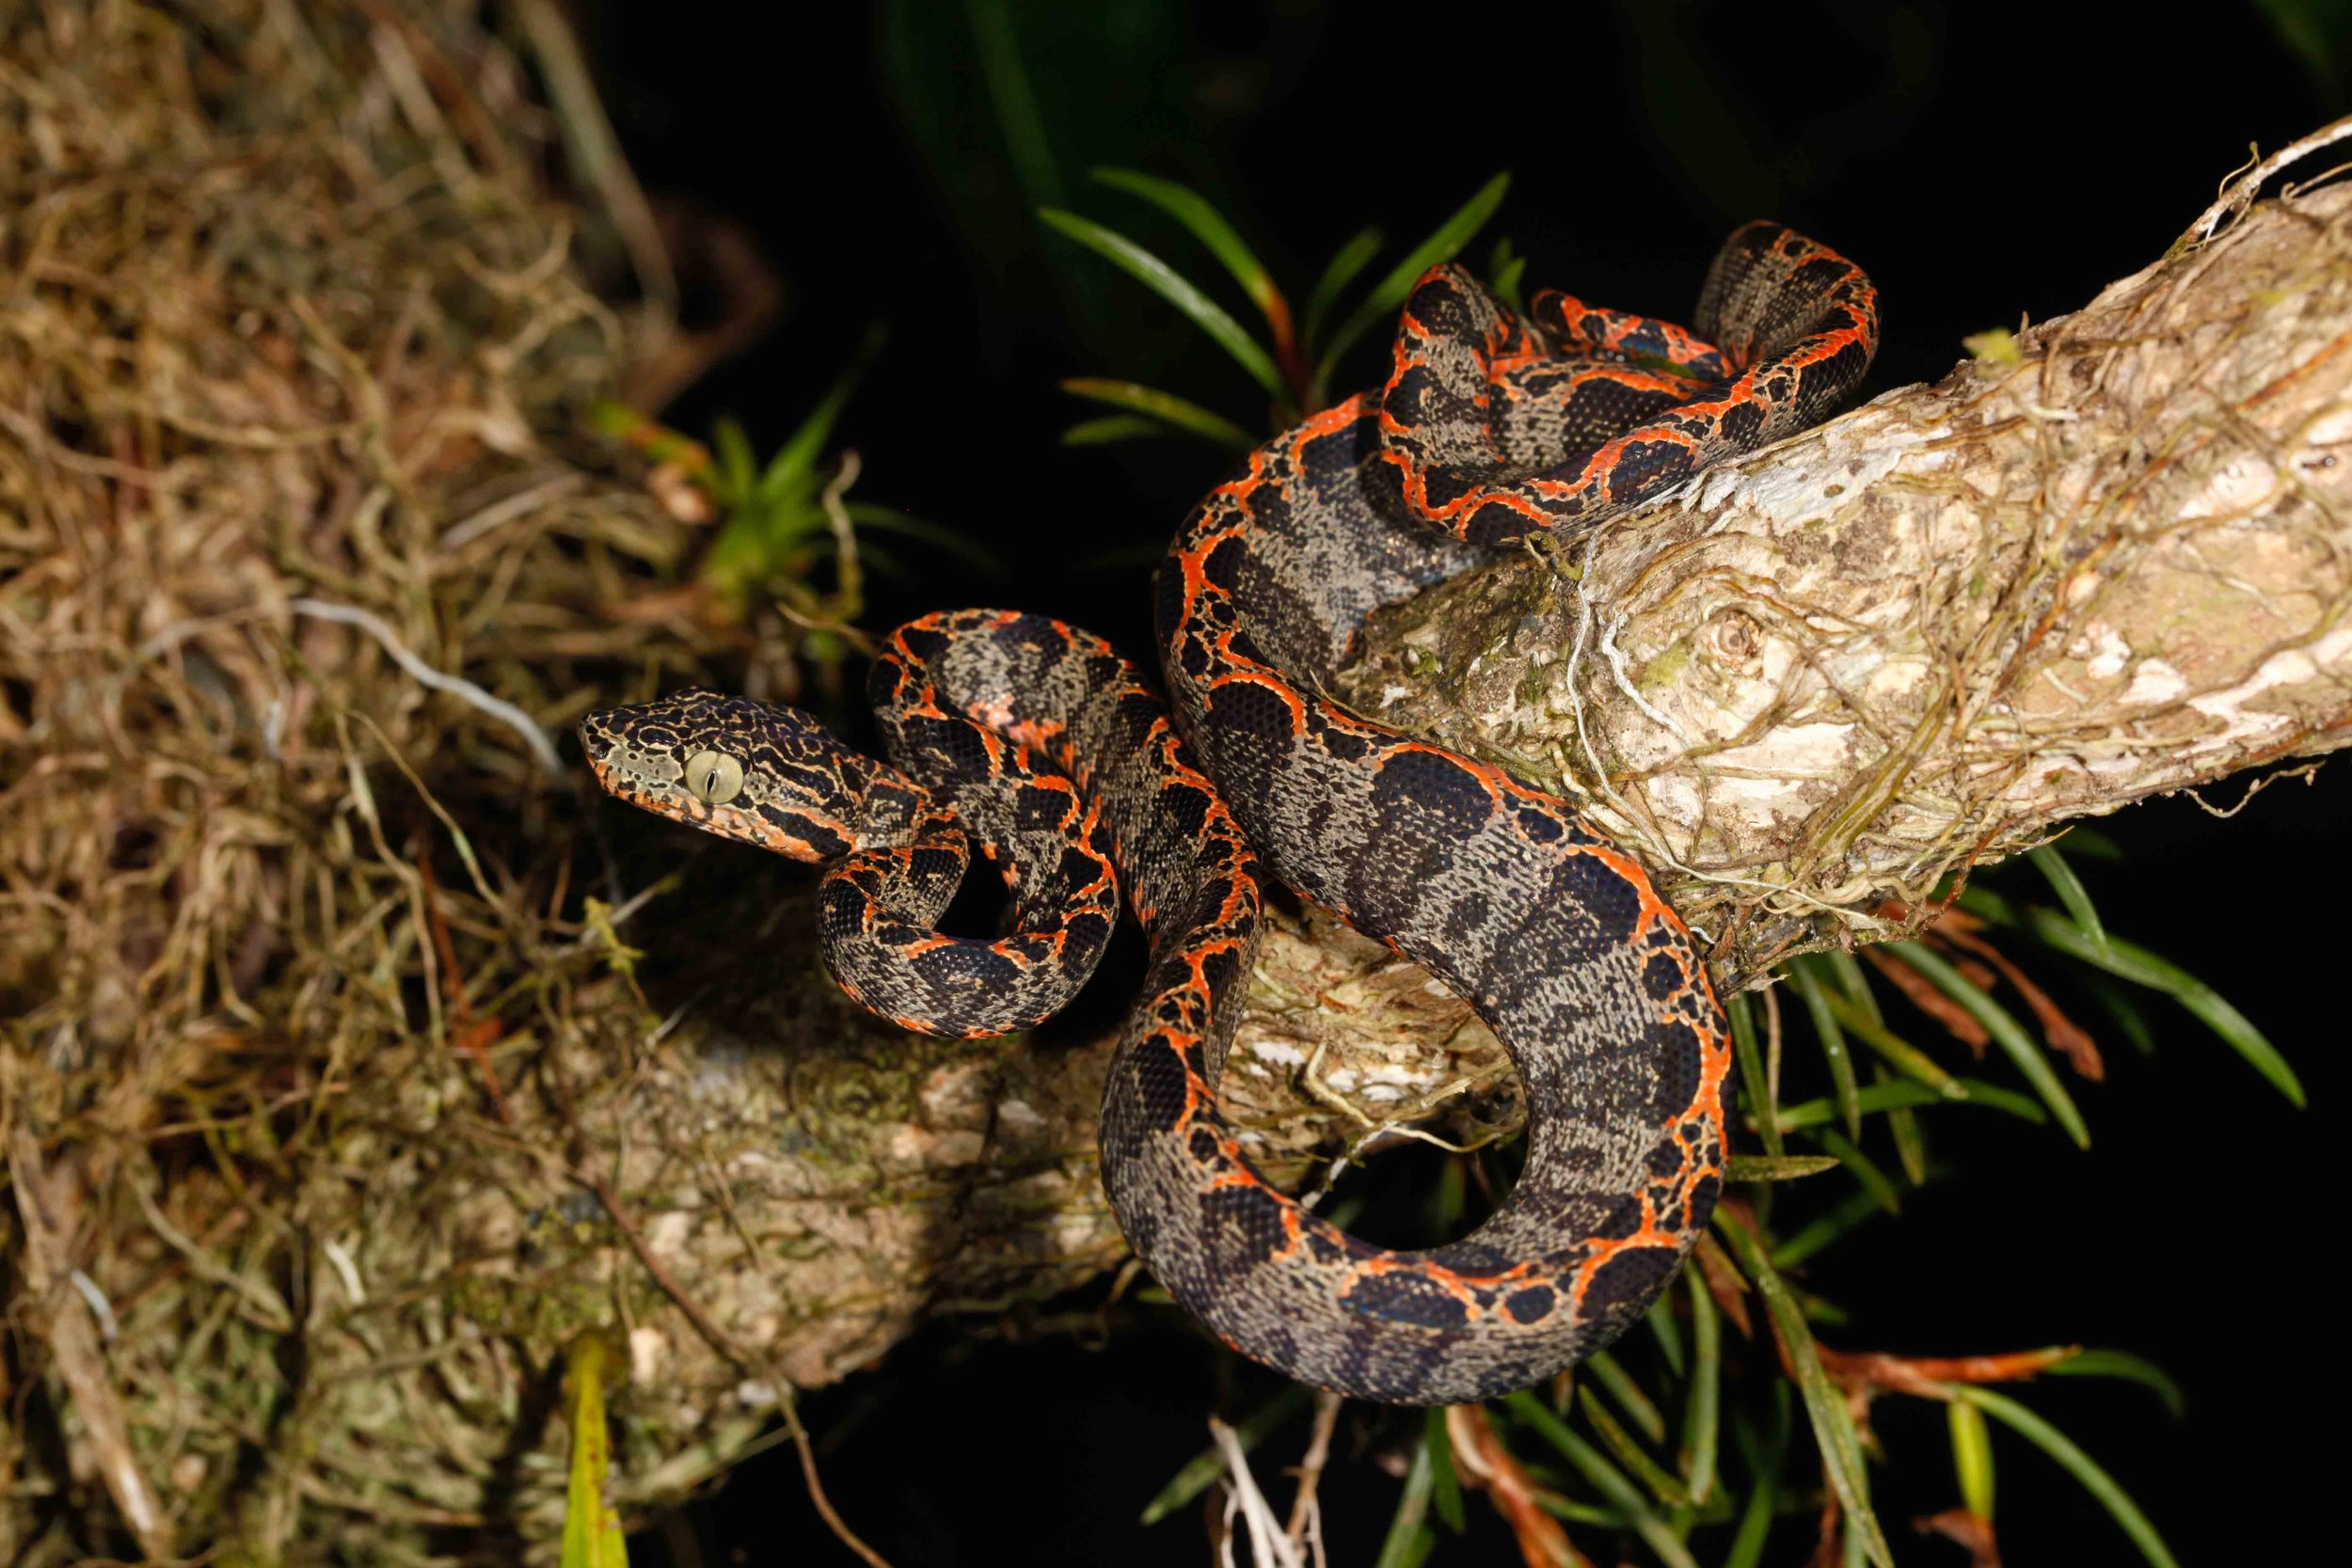 Corallus hortulanus, Amazon Tree Boa (Photo by Matt Cage)